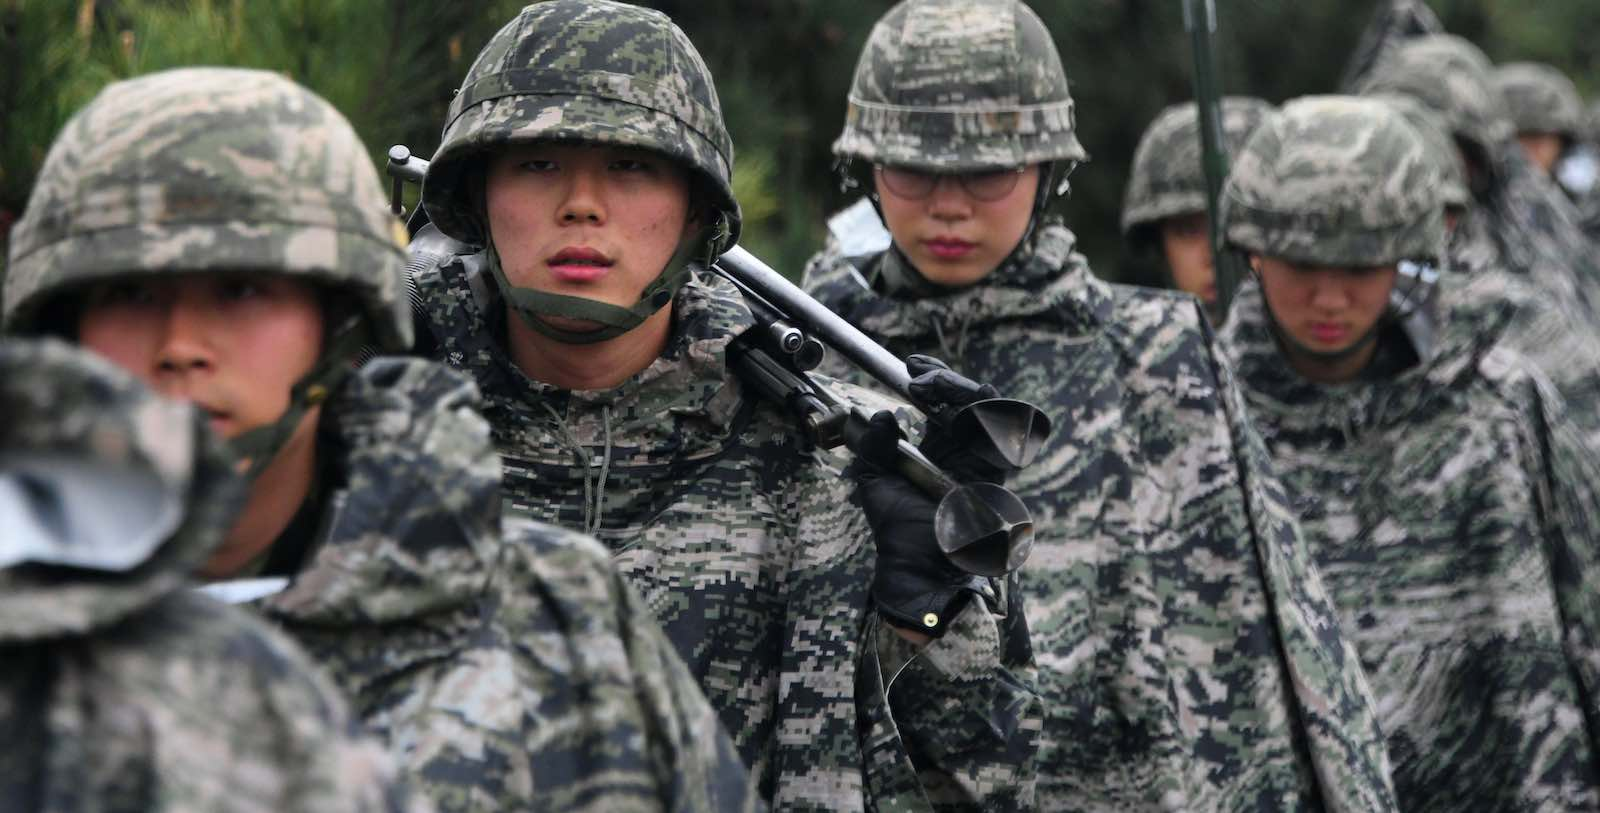 South Korean marines march in April (Photo: Jung Yeon-je via Getty)